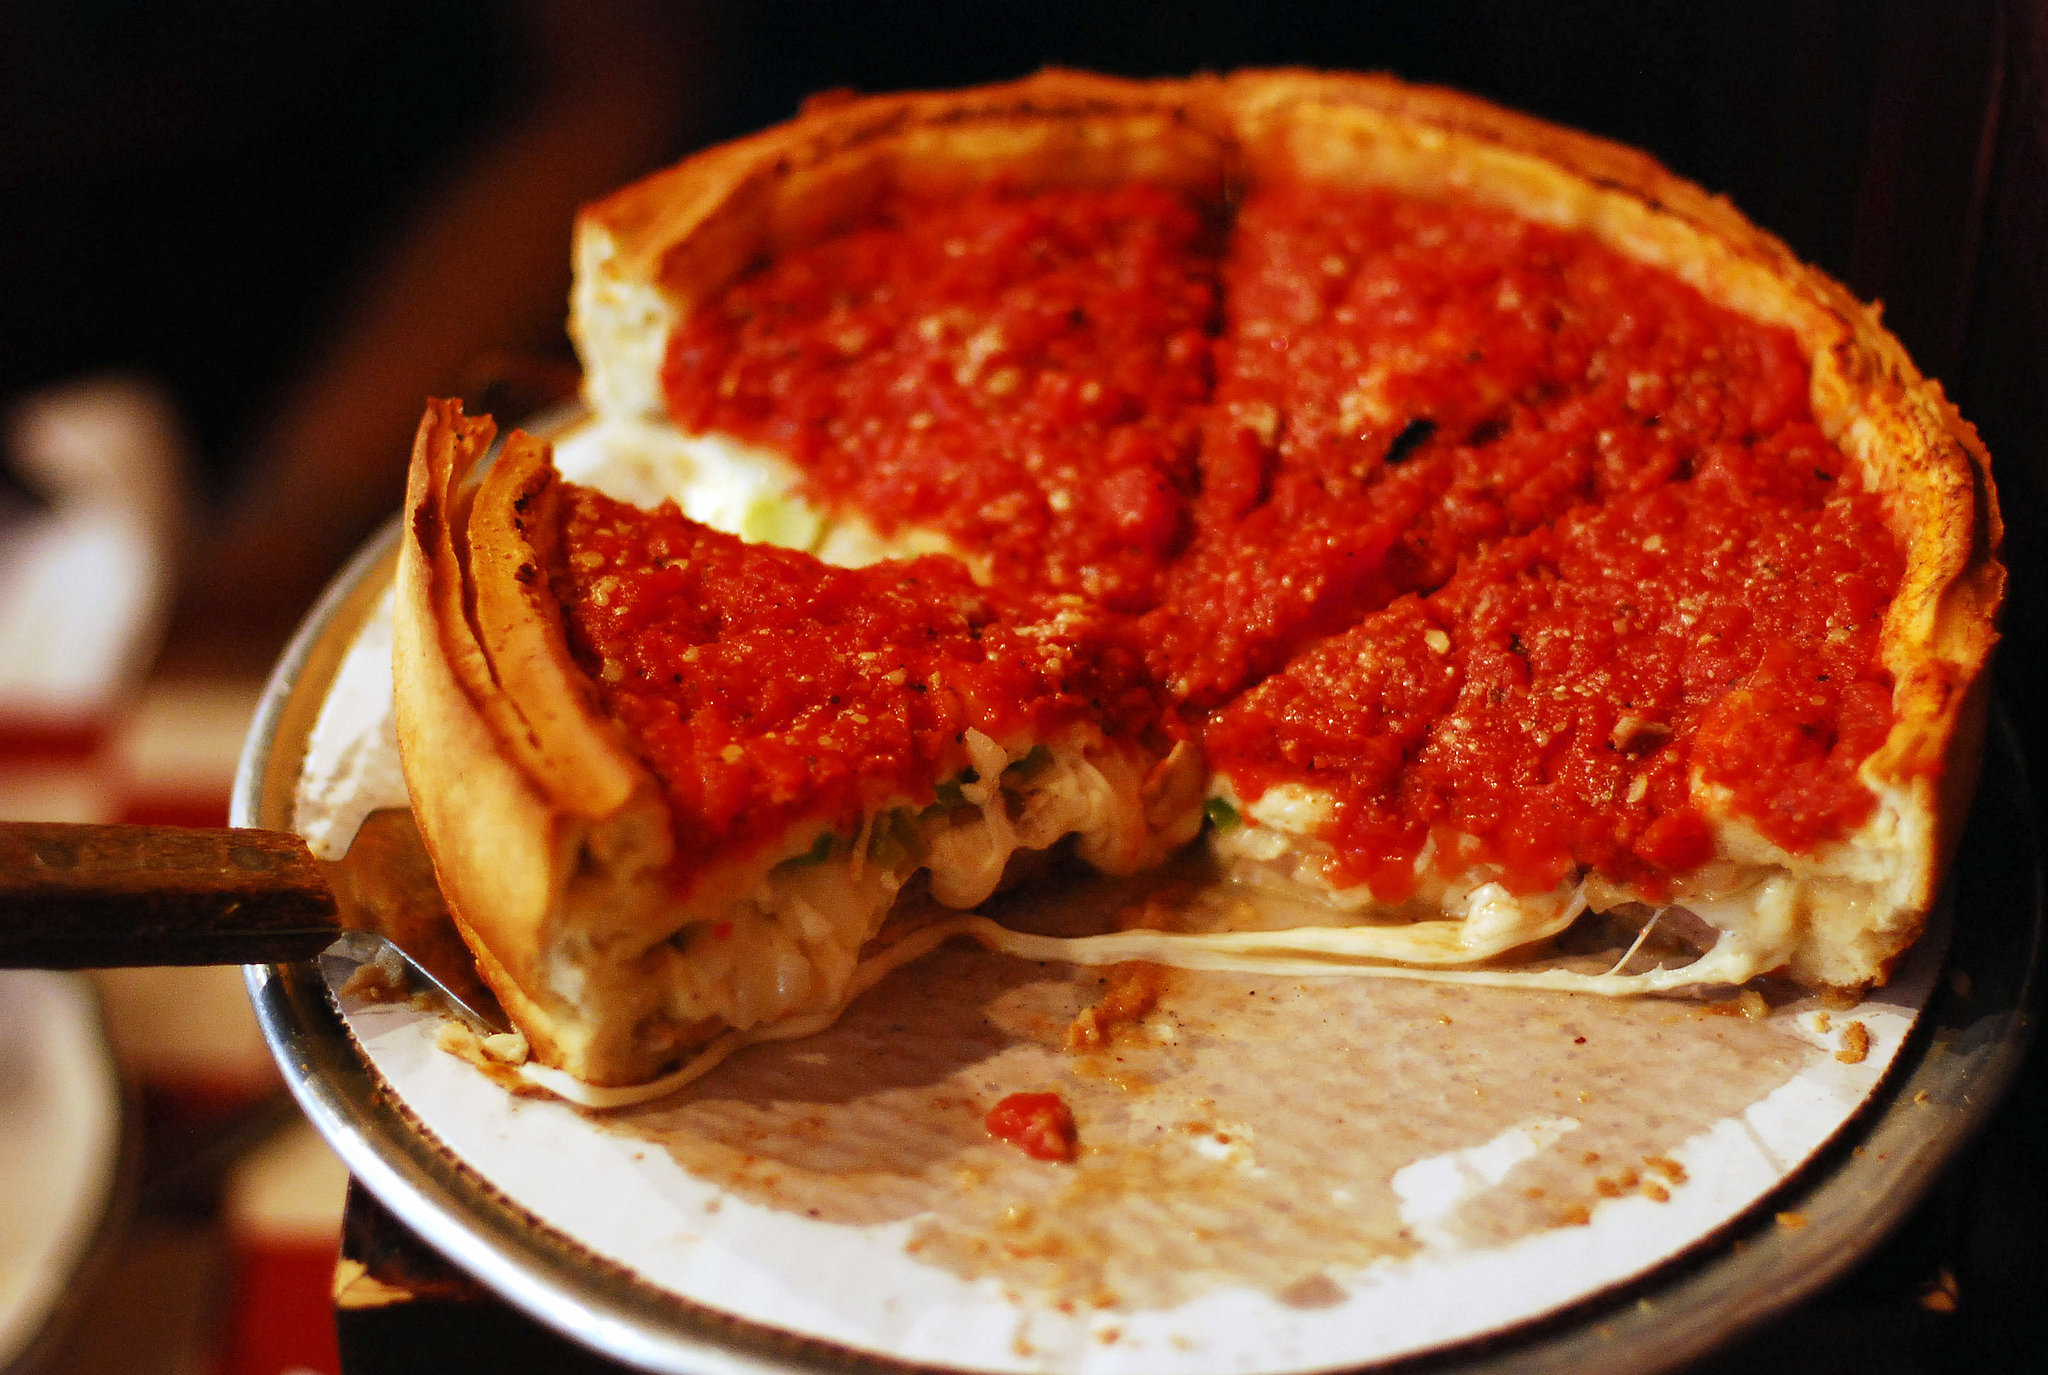 One simply cannot live life without trying deep-dish pizza with its ...